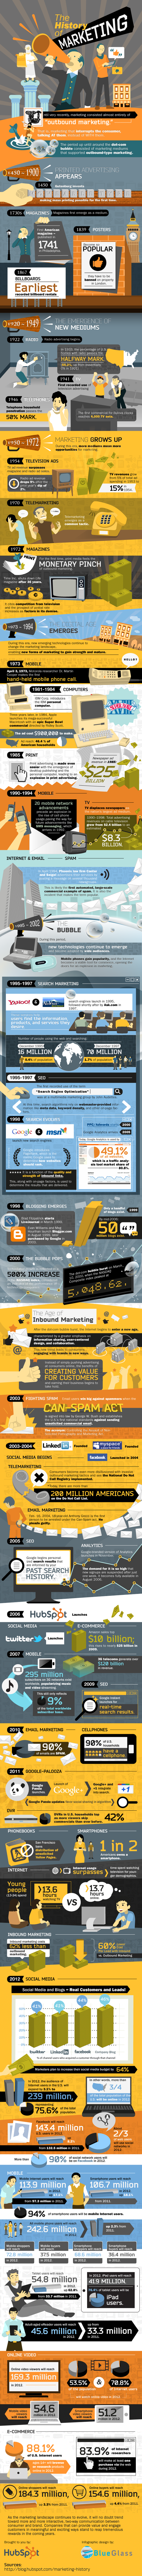 The-History-Of-Marketing-infographic